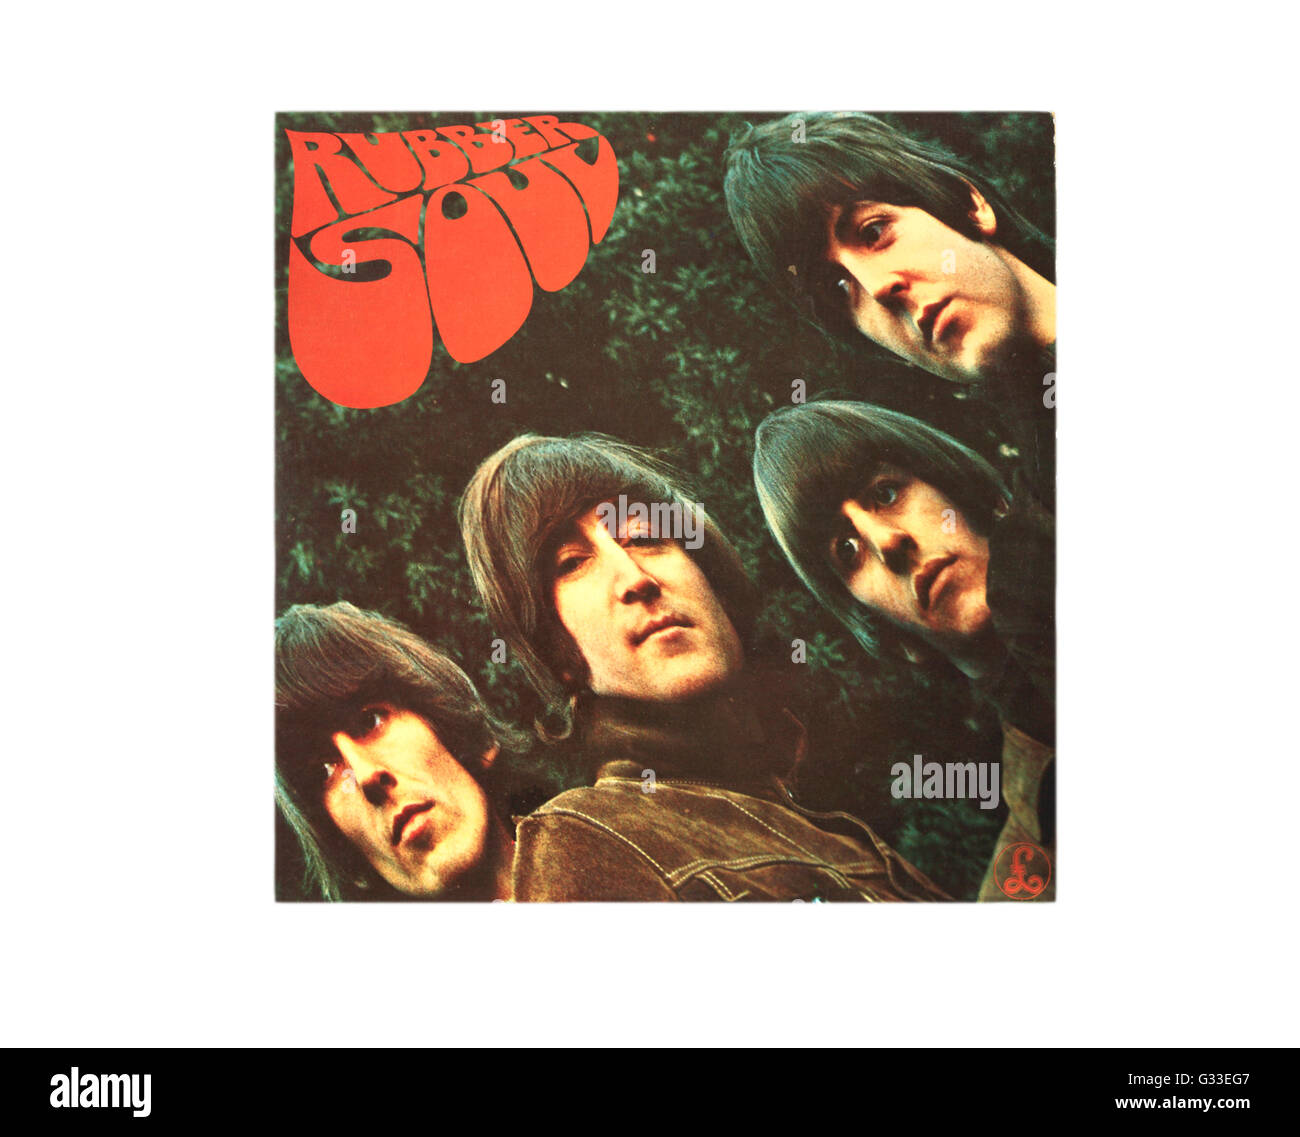 Rubber Soul long playing album cover by The Beatles. Stock Photo